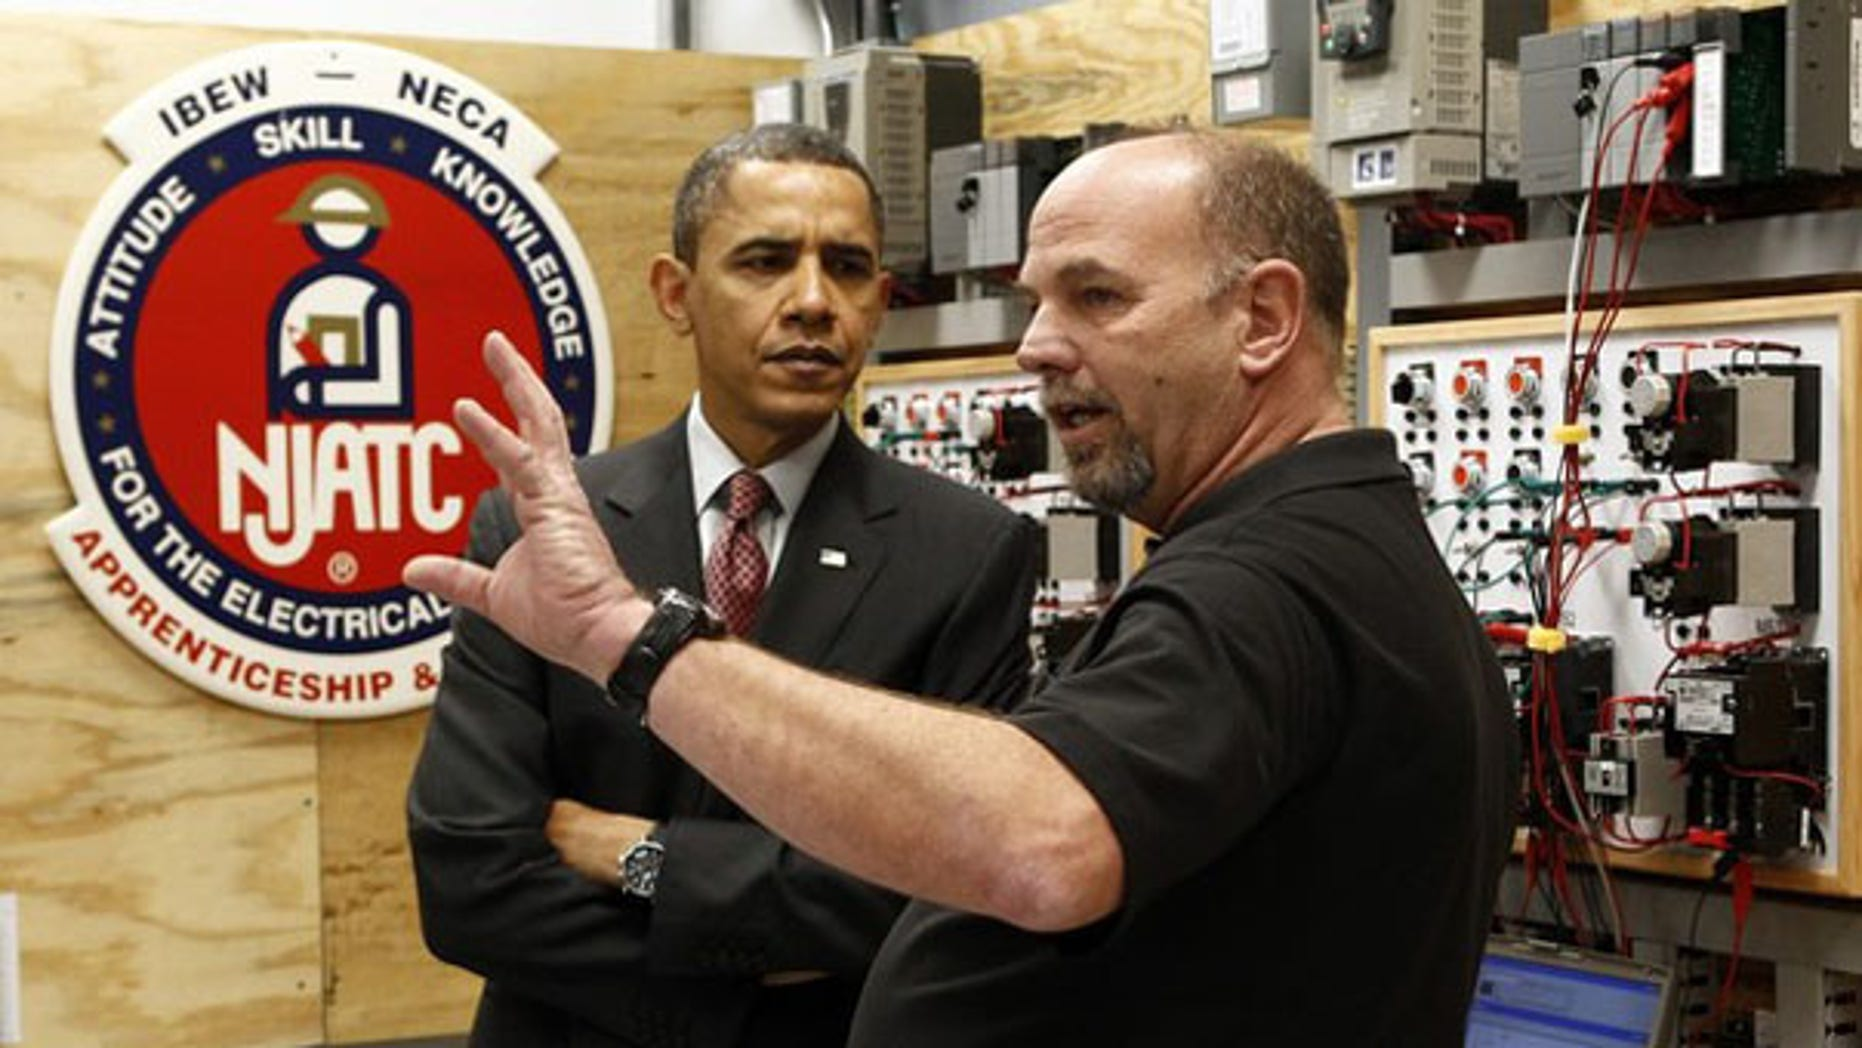 President Obama speaks with school coordinator Ralph Neidert as he tours a training center at the International Brotherhood of Electrical Workers Local 26 Headquarters in Lanham, Md., Feb. 16. (Reuters Photo)